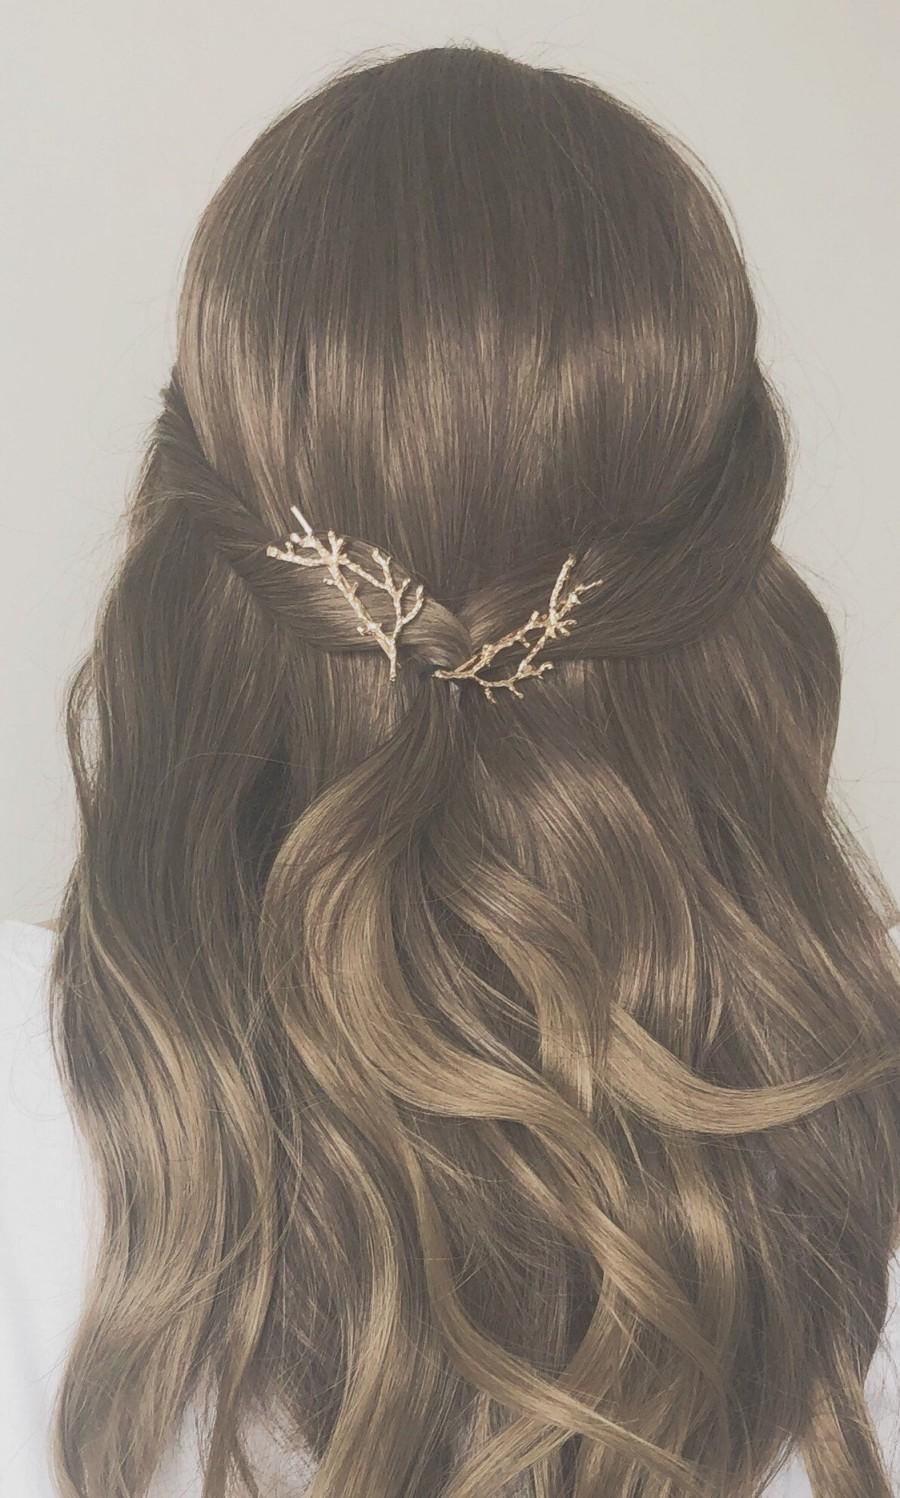 Mariage - Twigs hair pins, Wedding hair pins, branch bobby pins, Flower bobby pins, Vintage hair accessory, Boho style, Tree Branch